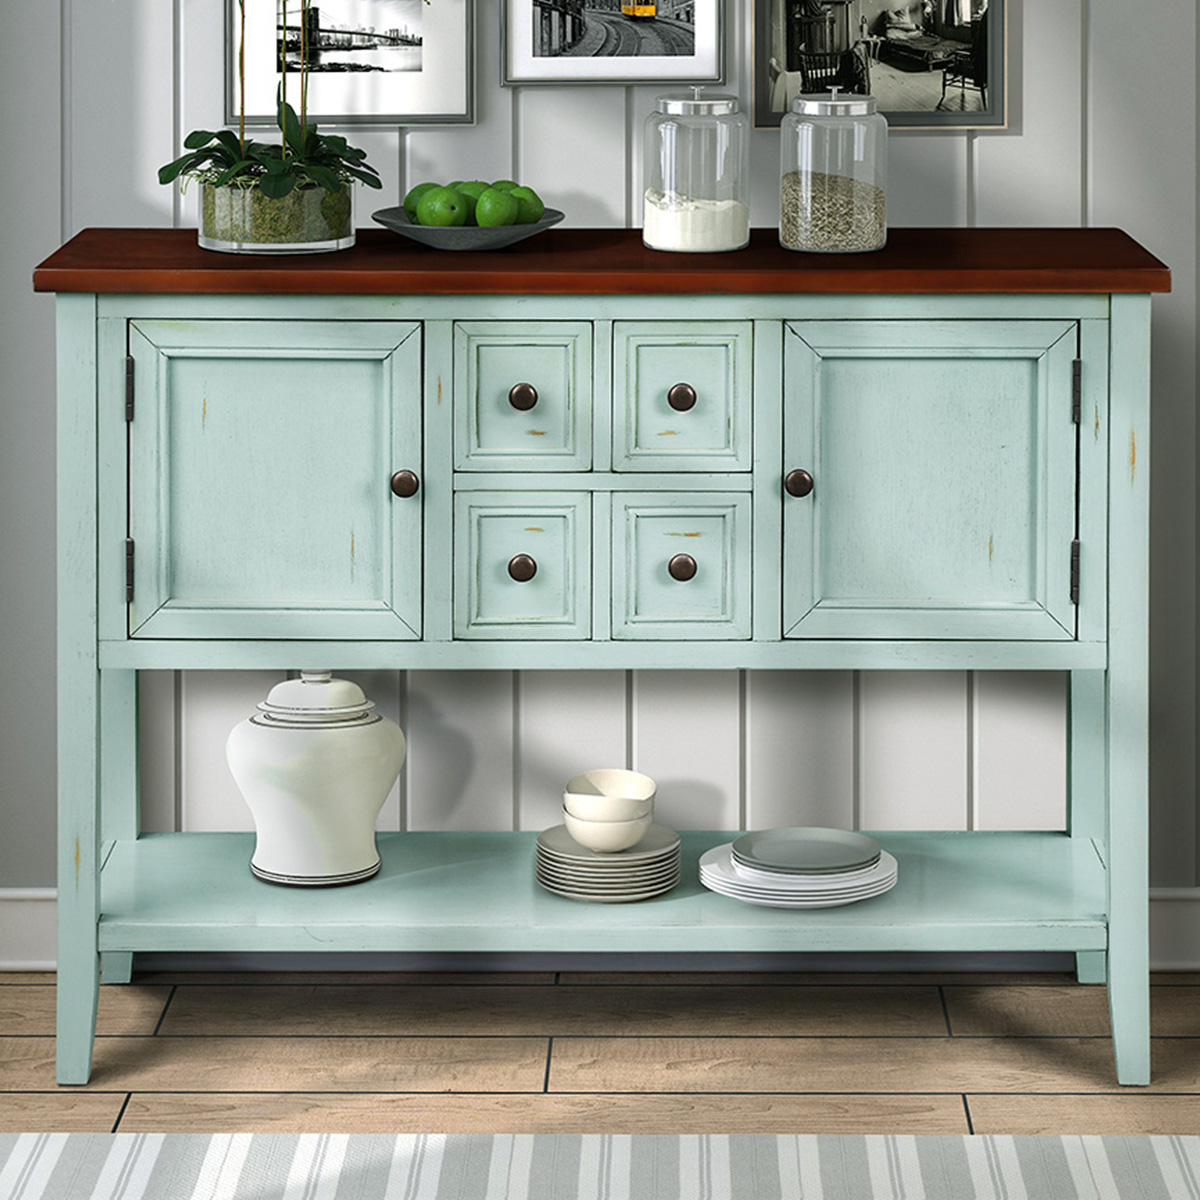 Picture of: Segmart Dining Buffets And Sideboards 46 Buffet Cabinet Sideboard With Four Storage Drawers Two Cabinets And Bottom Shelf Wood Console Table Storage Cabinet For Dining Room Home Furniture L2479 Walmart Com